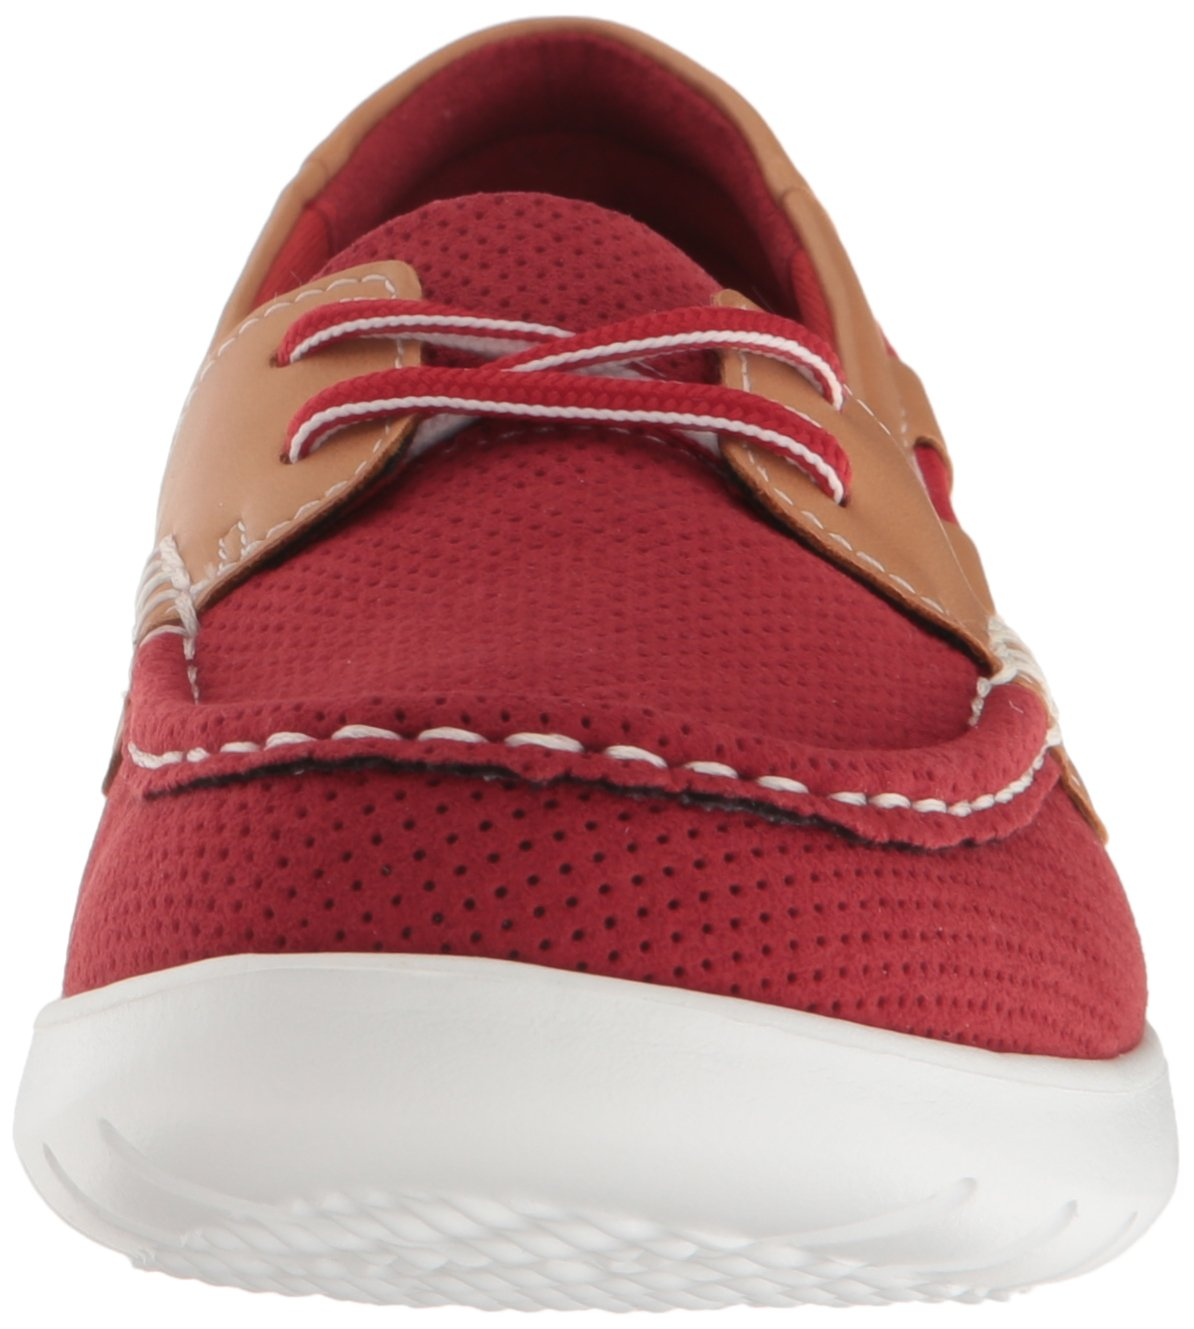 CLARKS Women's Jocolin Vista Boat Shoe, Red Perforated Microfiber, 12 B(M) US by CLARKS (Image #4)